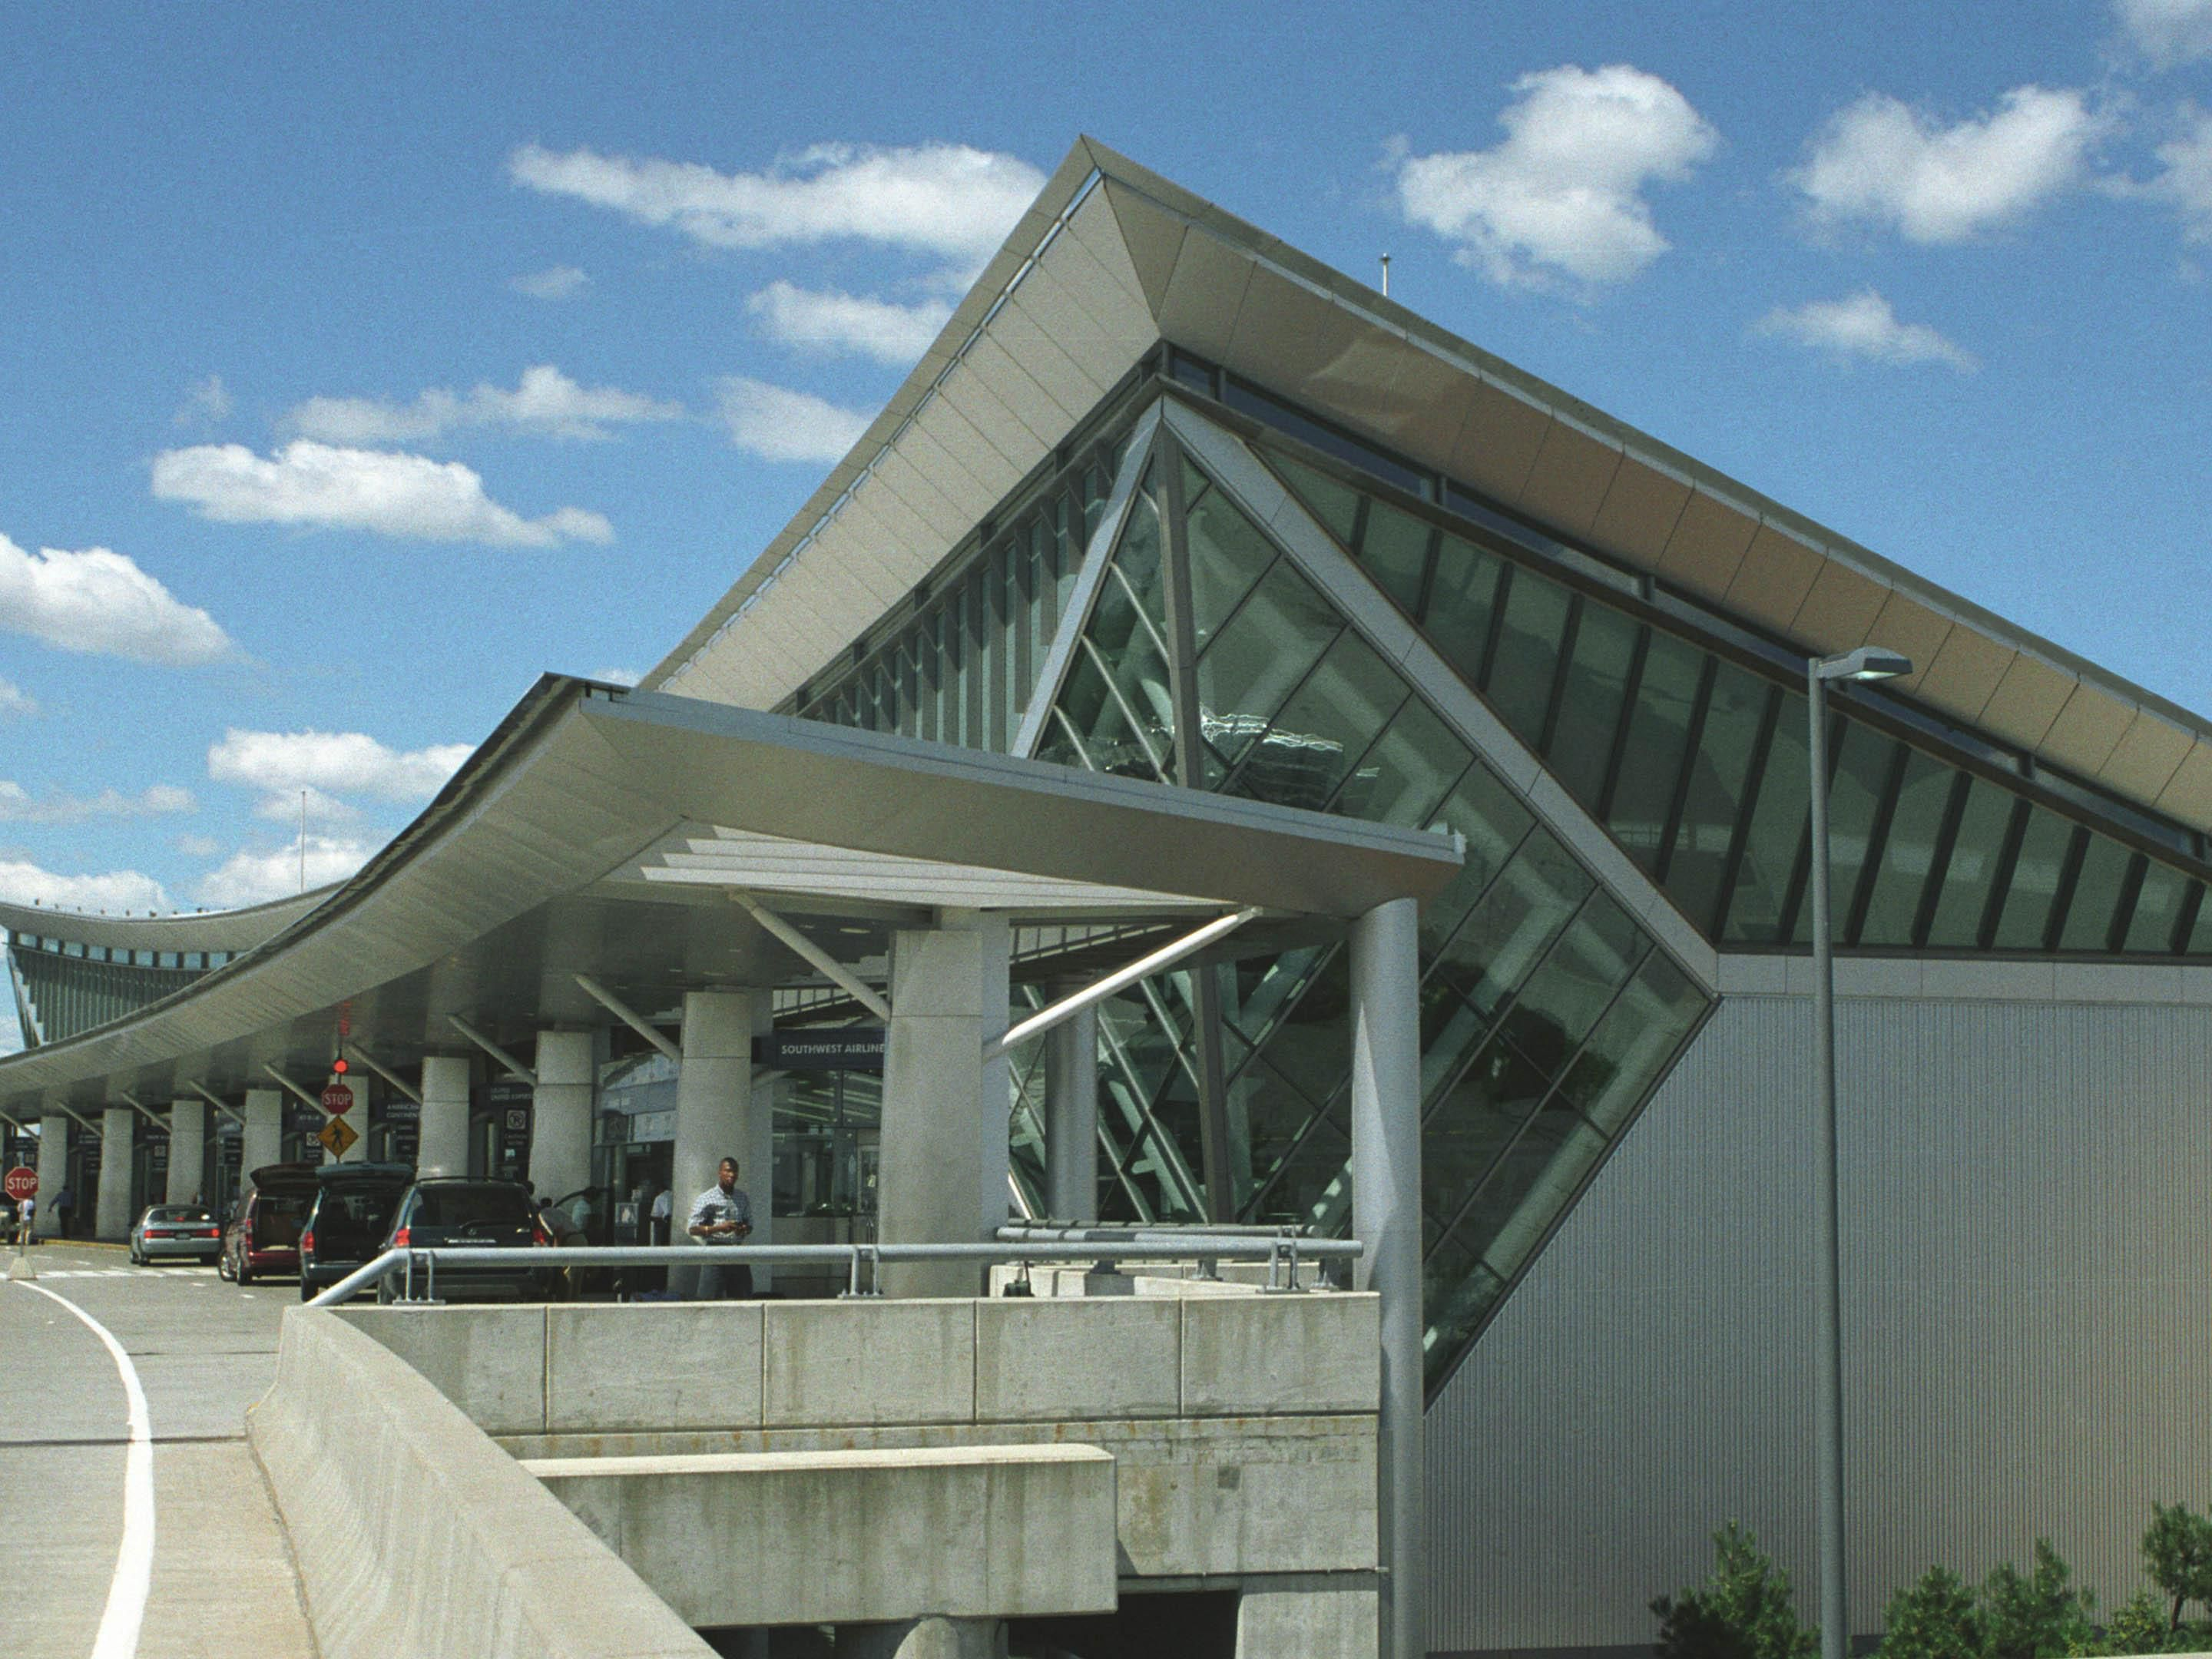 Across the street from the Buffalo Niagara International Airport